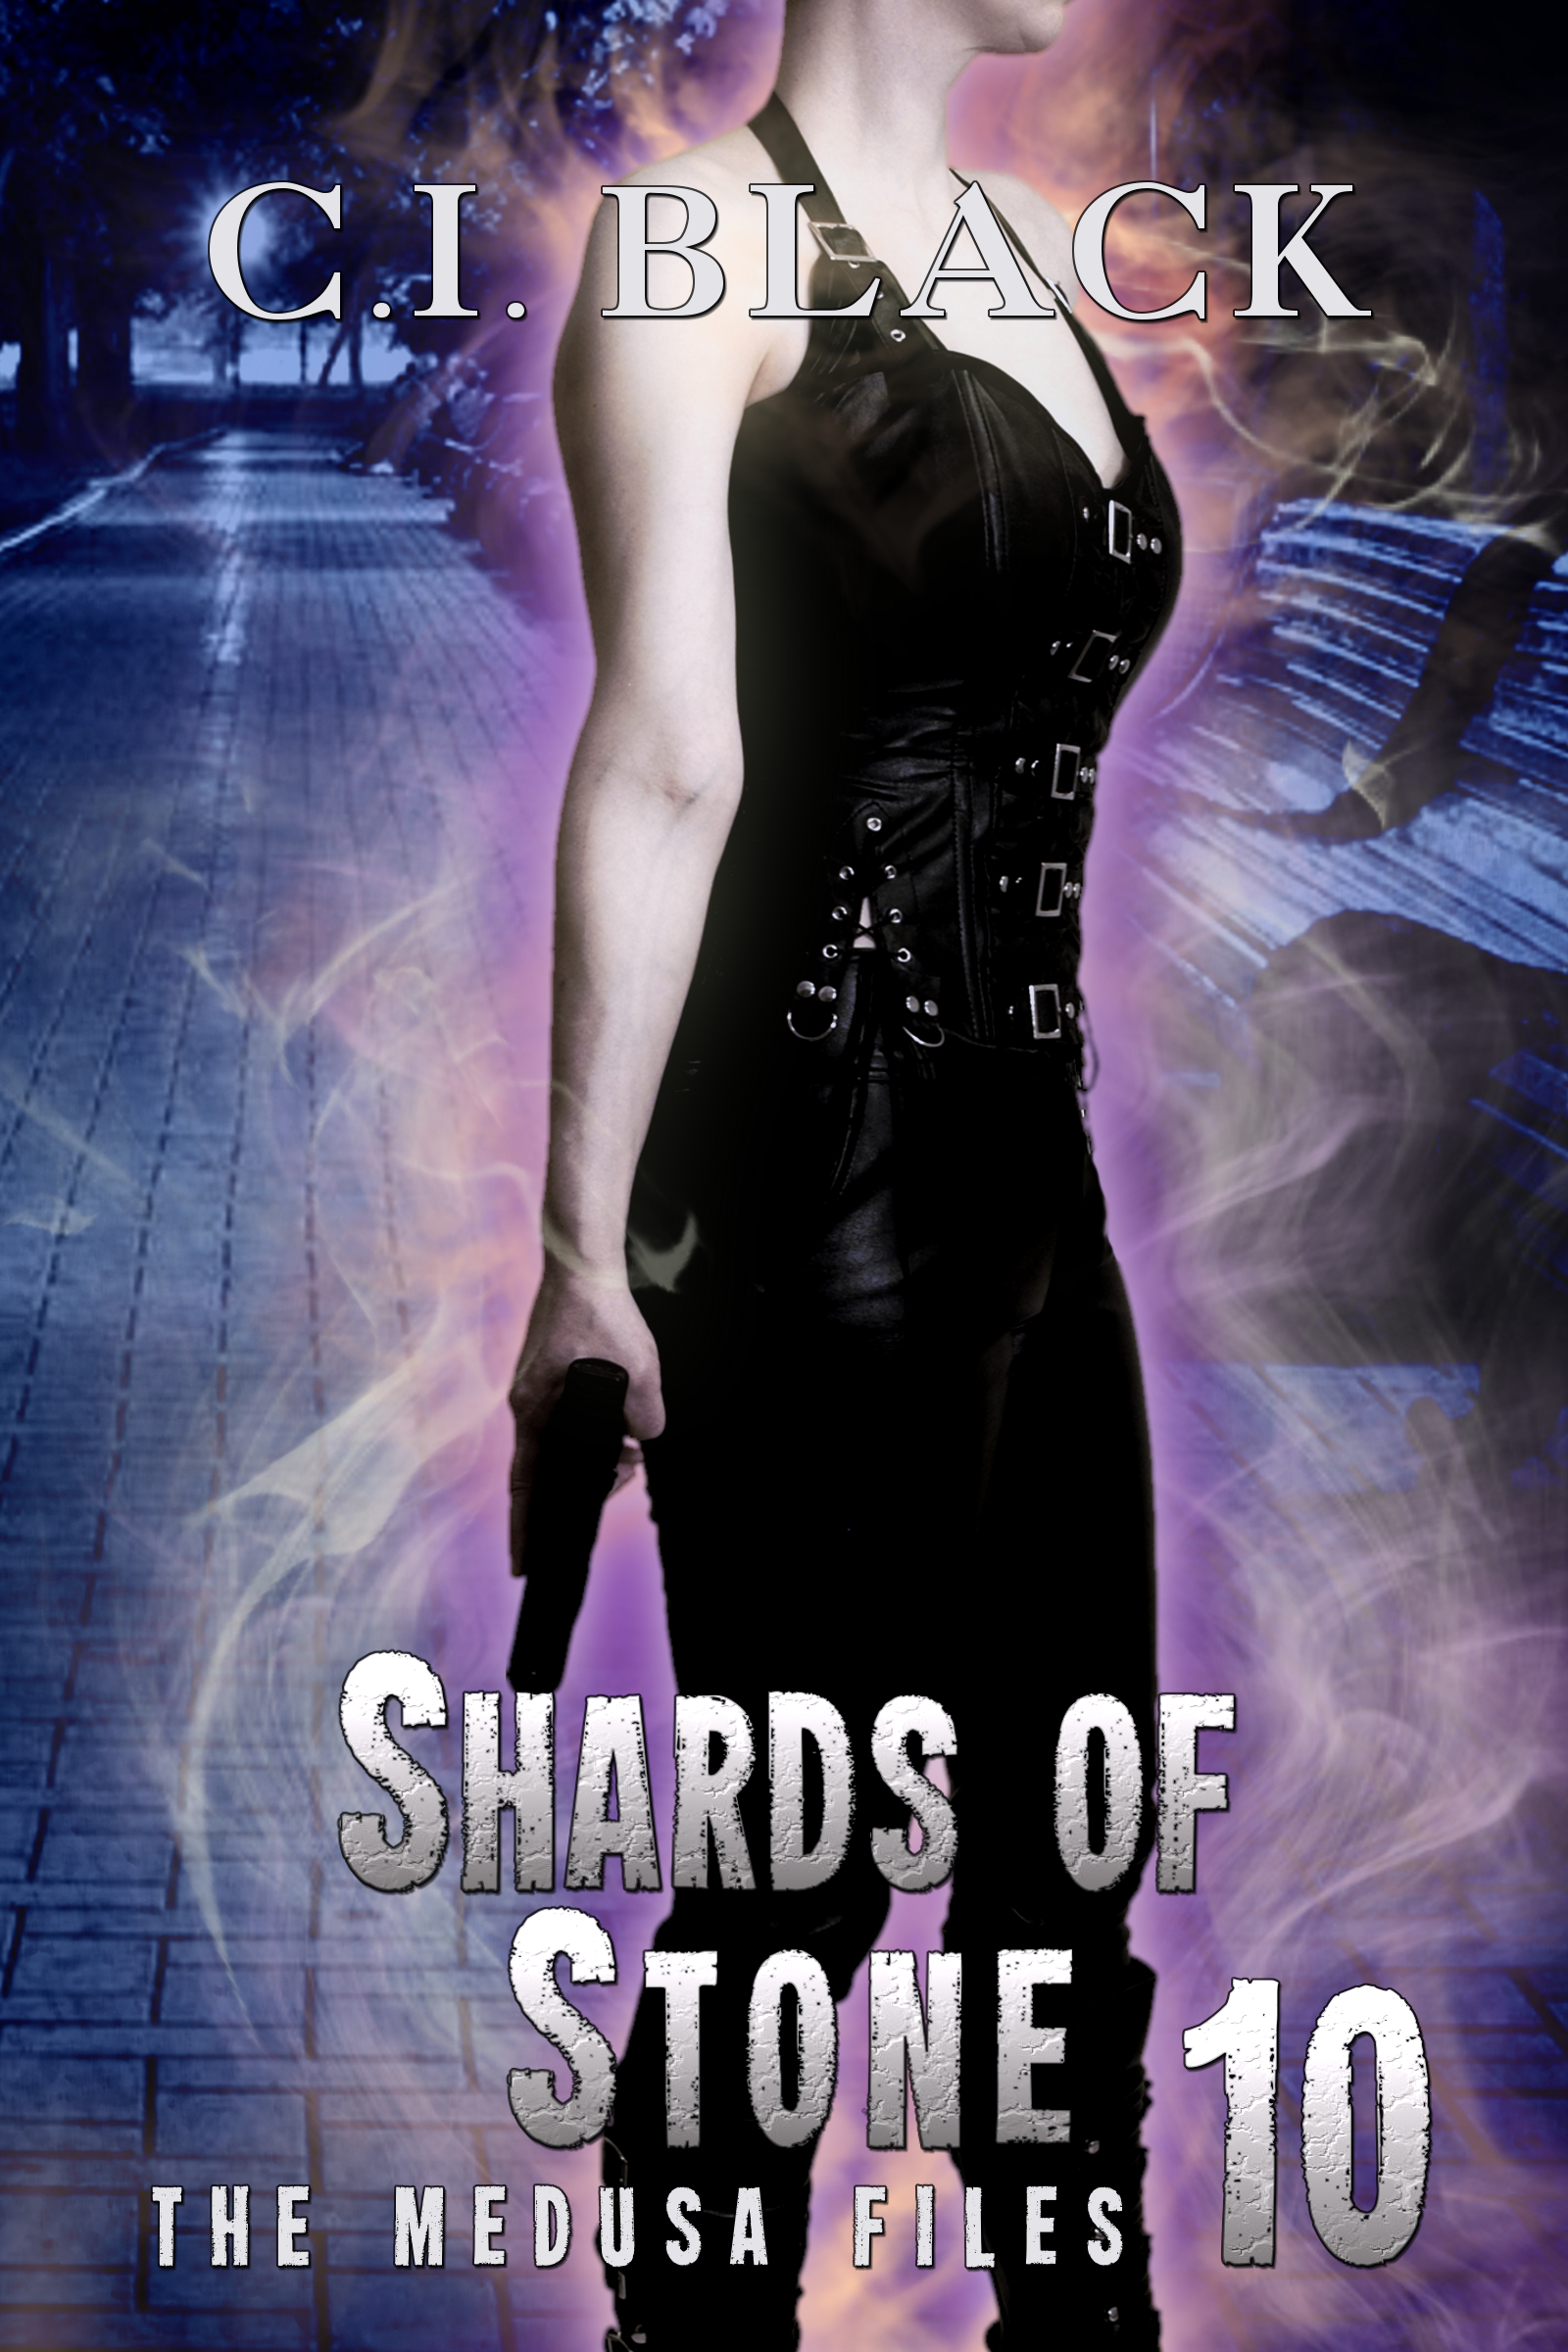 The Medusa Files, case 10: Shards of Stone, an urban fantasy / paranormal romance and the tenth book in the Medusa Files series by C.I. Black